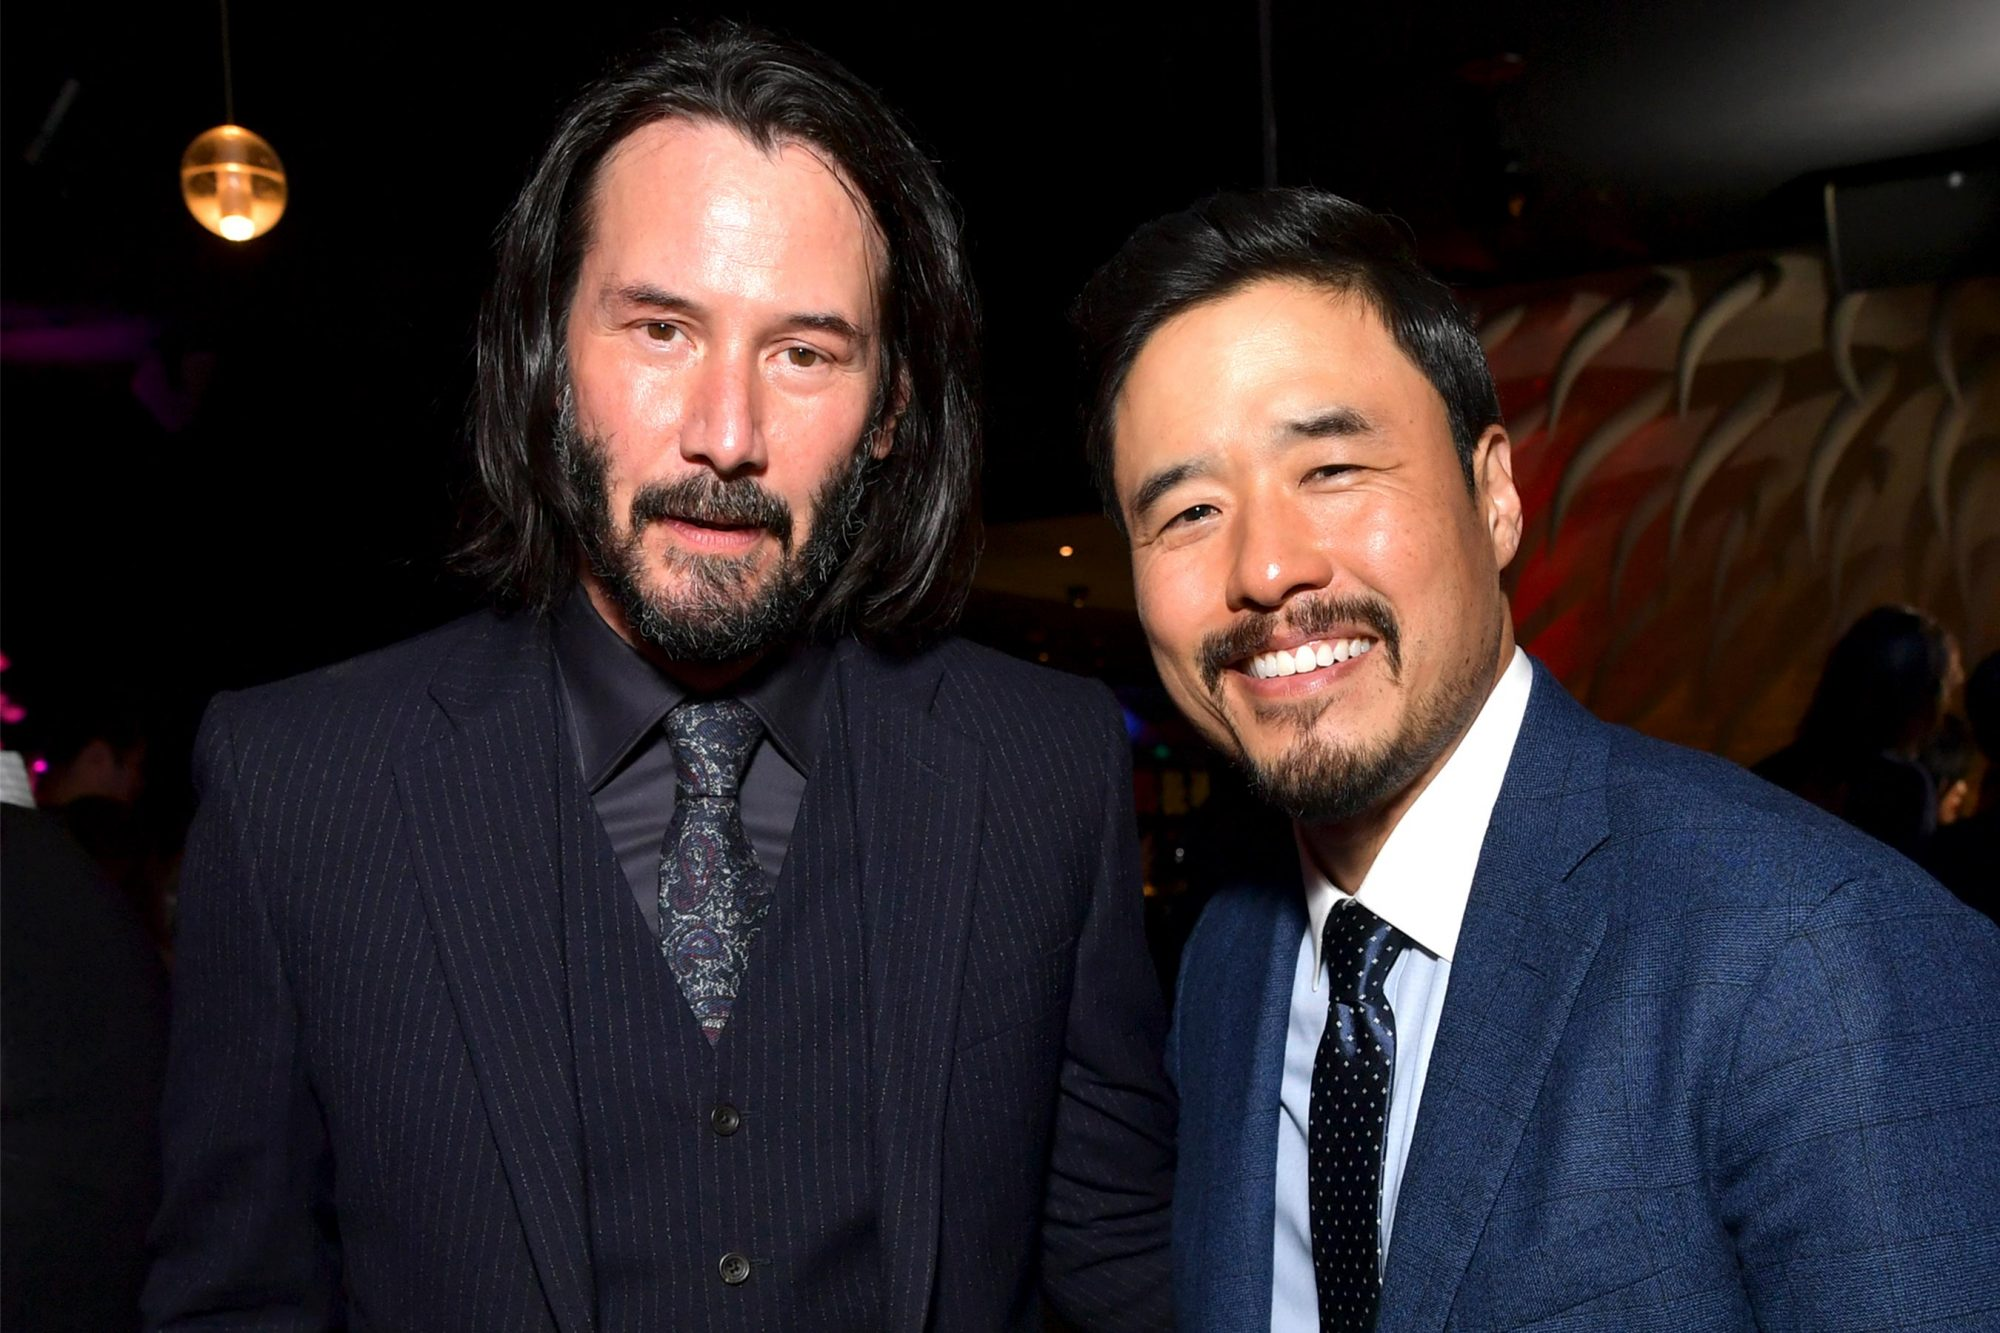 WESTWOOD, CALIFORNIA - MAY 22: Keanu Reeves and Randall Park attend the afterparty for the world premiere of Netflix's 'Always Be My Maybe' at STK on May 22, 2019 in Westwood, California. (Photo by Emma McIntyre/Getty Images for Netflix)